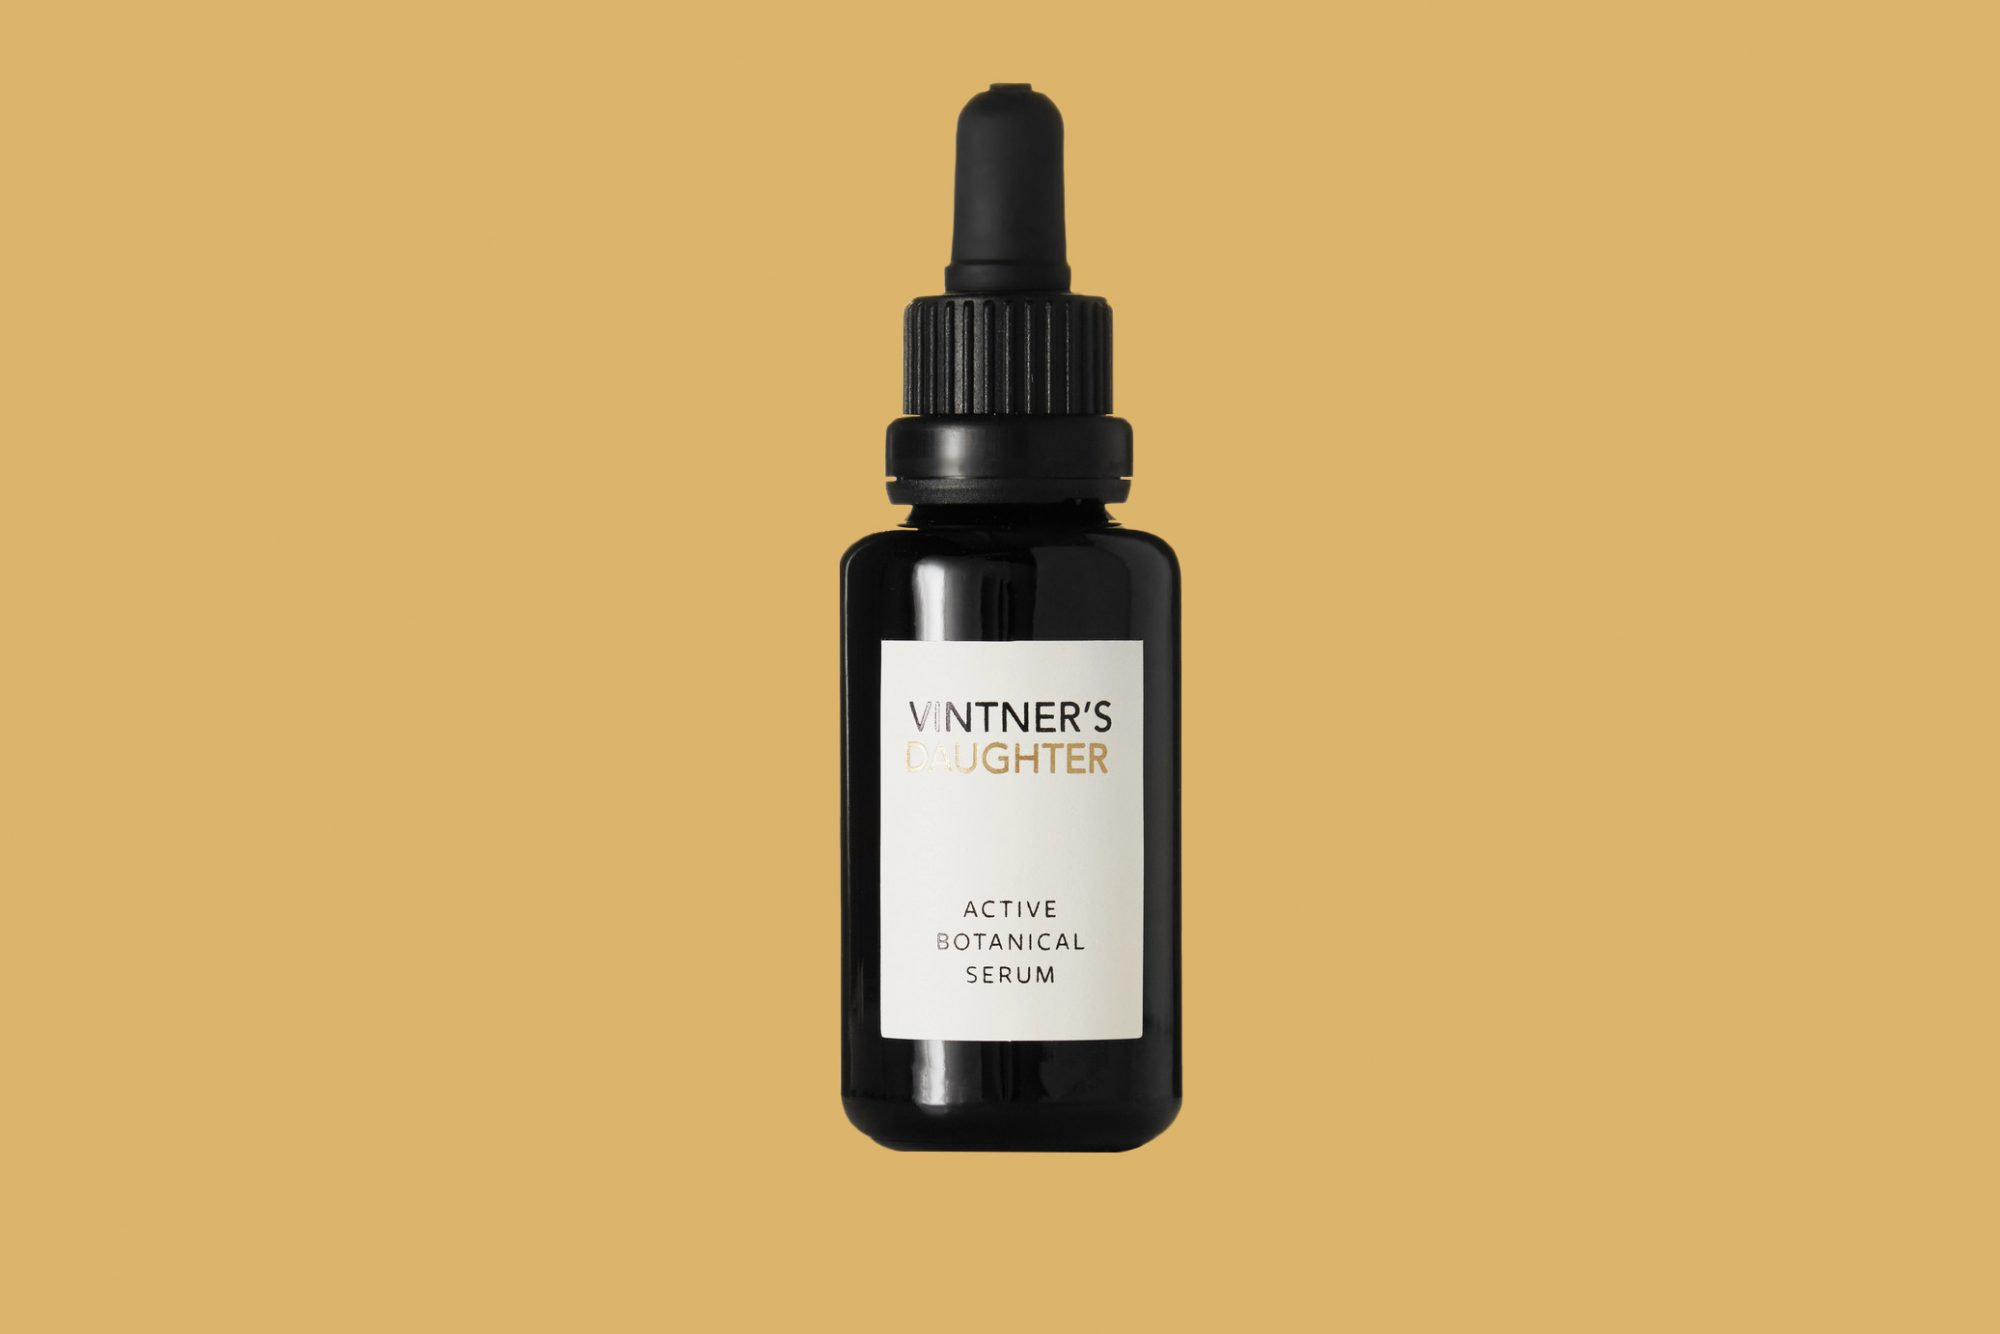 The Icon: Vintner's Daughter Active Botanical Serum